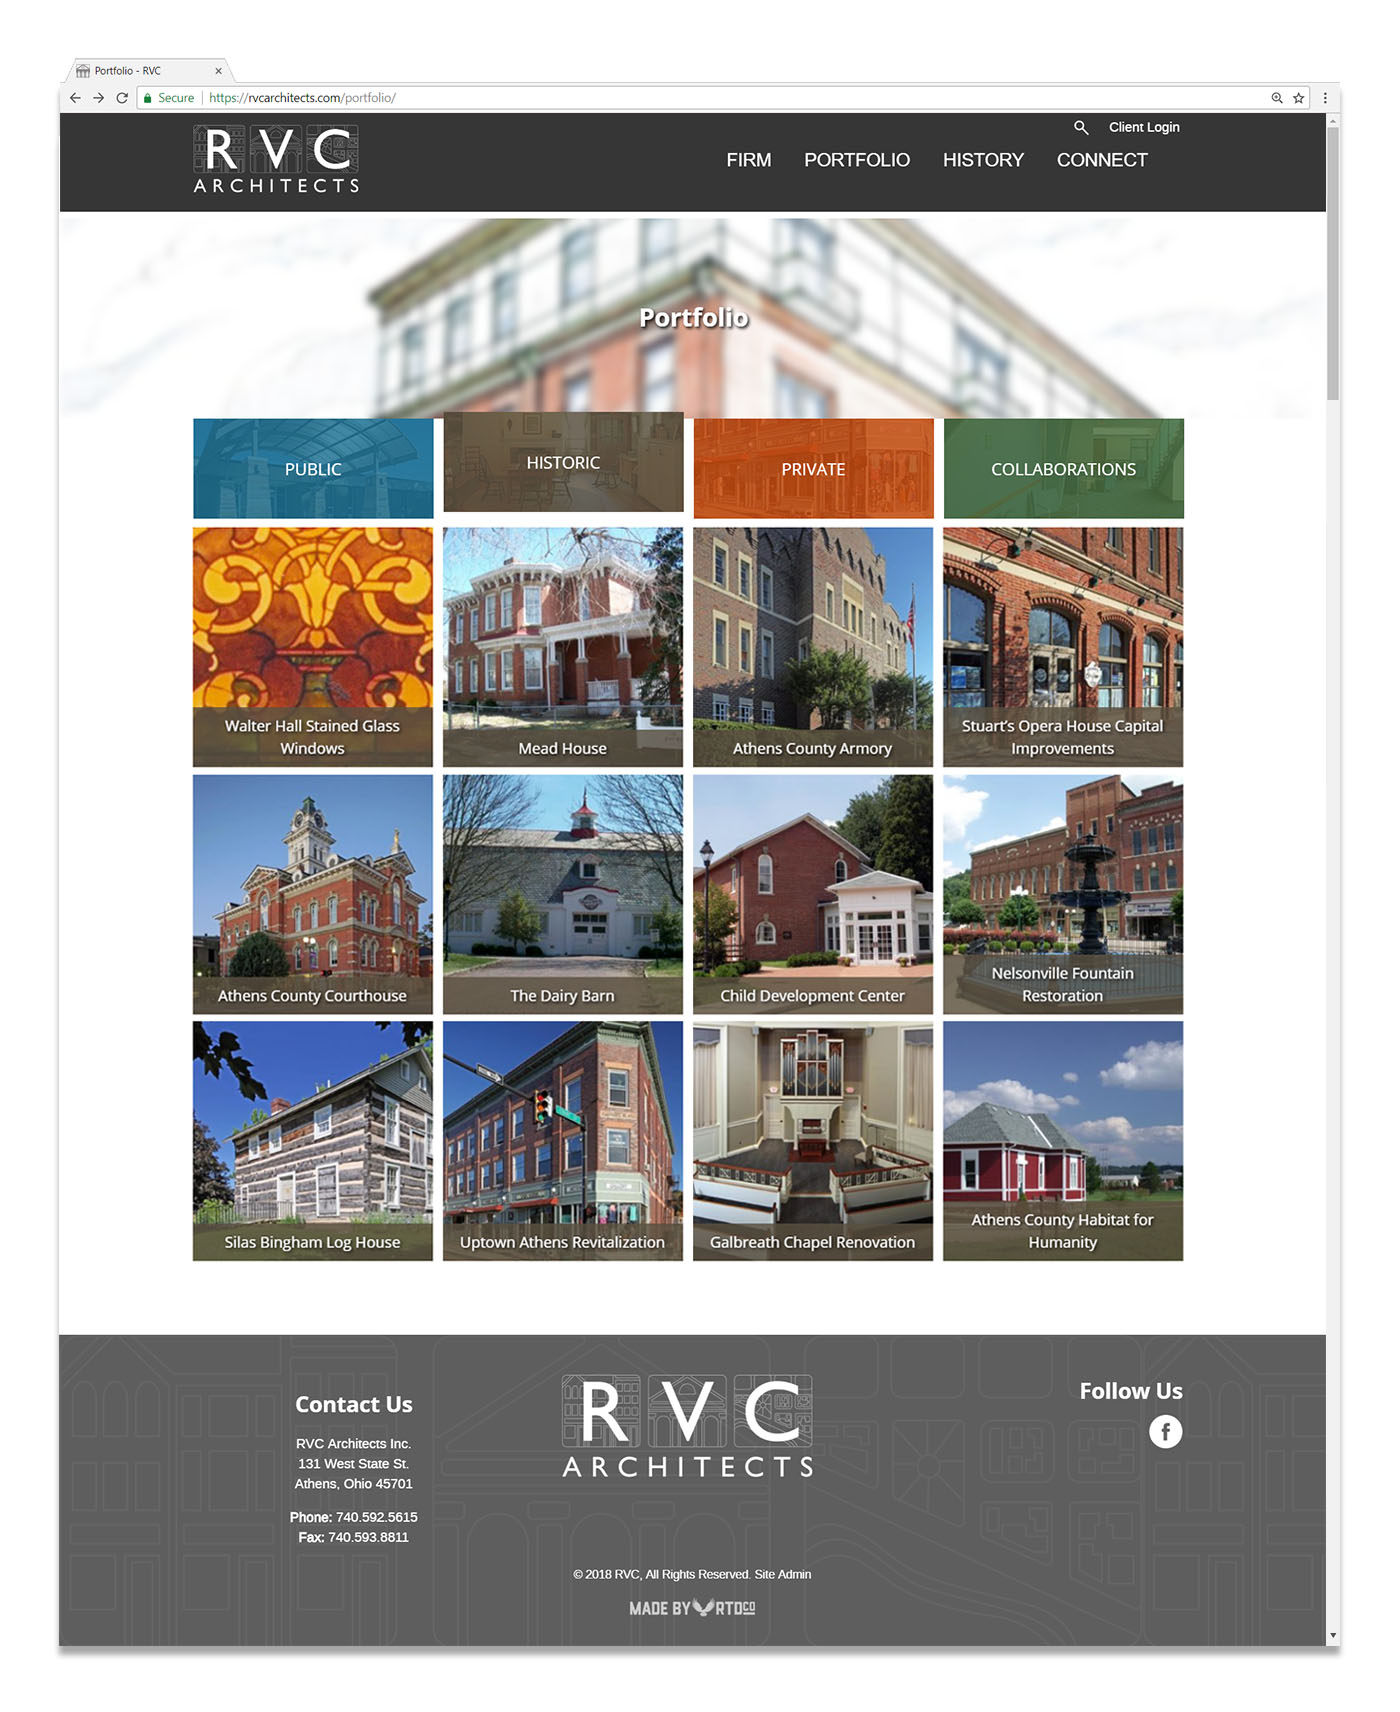 RVC Architects Athens Ohio website design by Red Tail